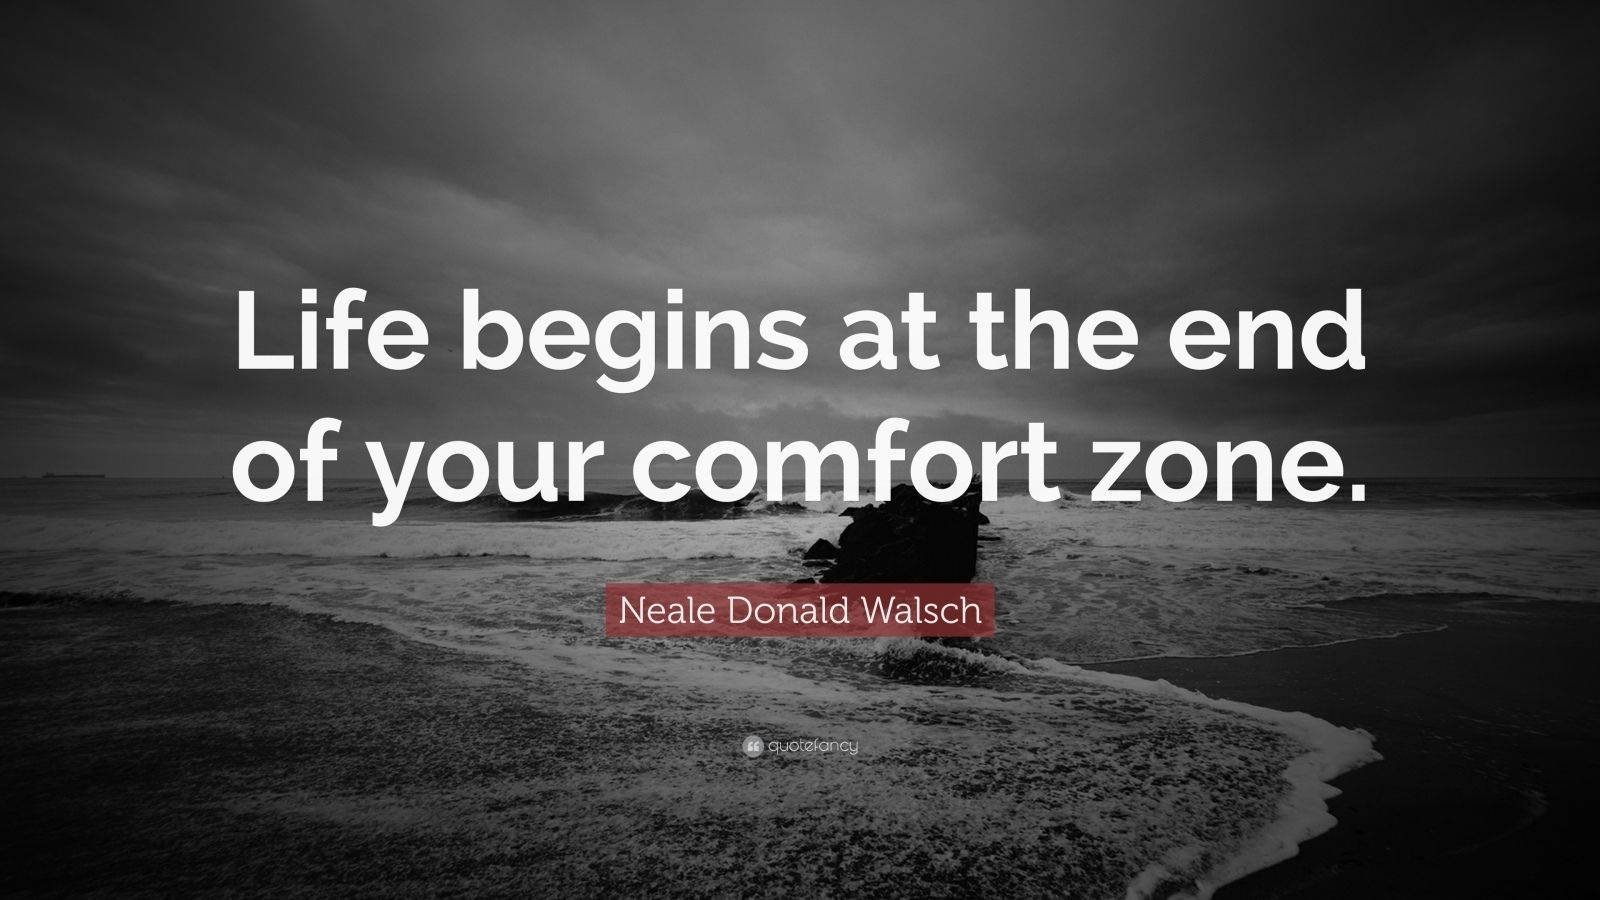 Motivational Quotes For Life Neale Donald Walsch Quotes 100 Wallpapers  Quotefancy